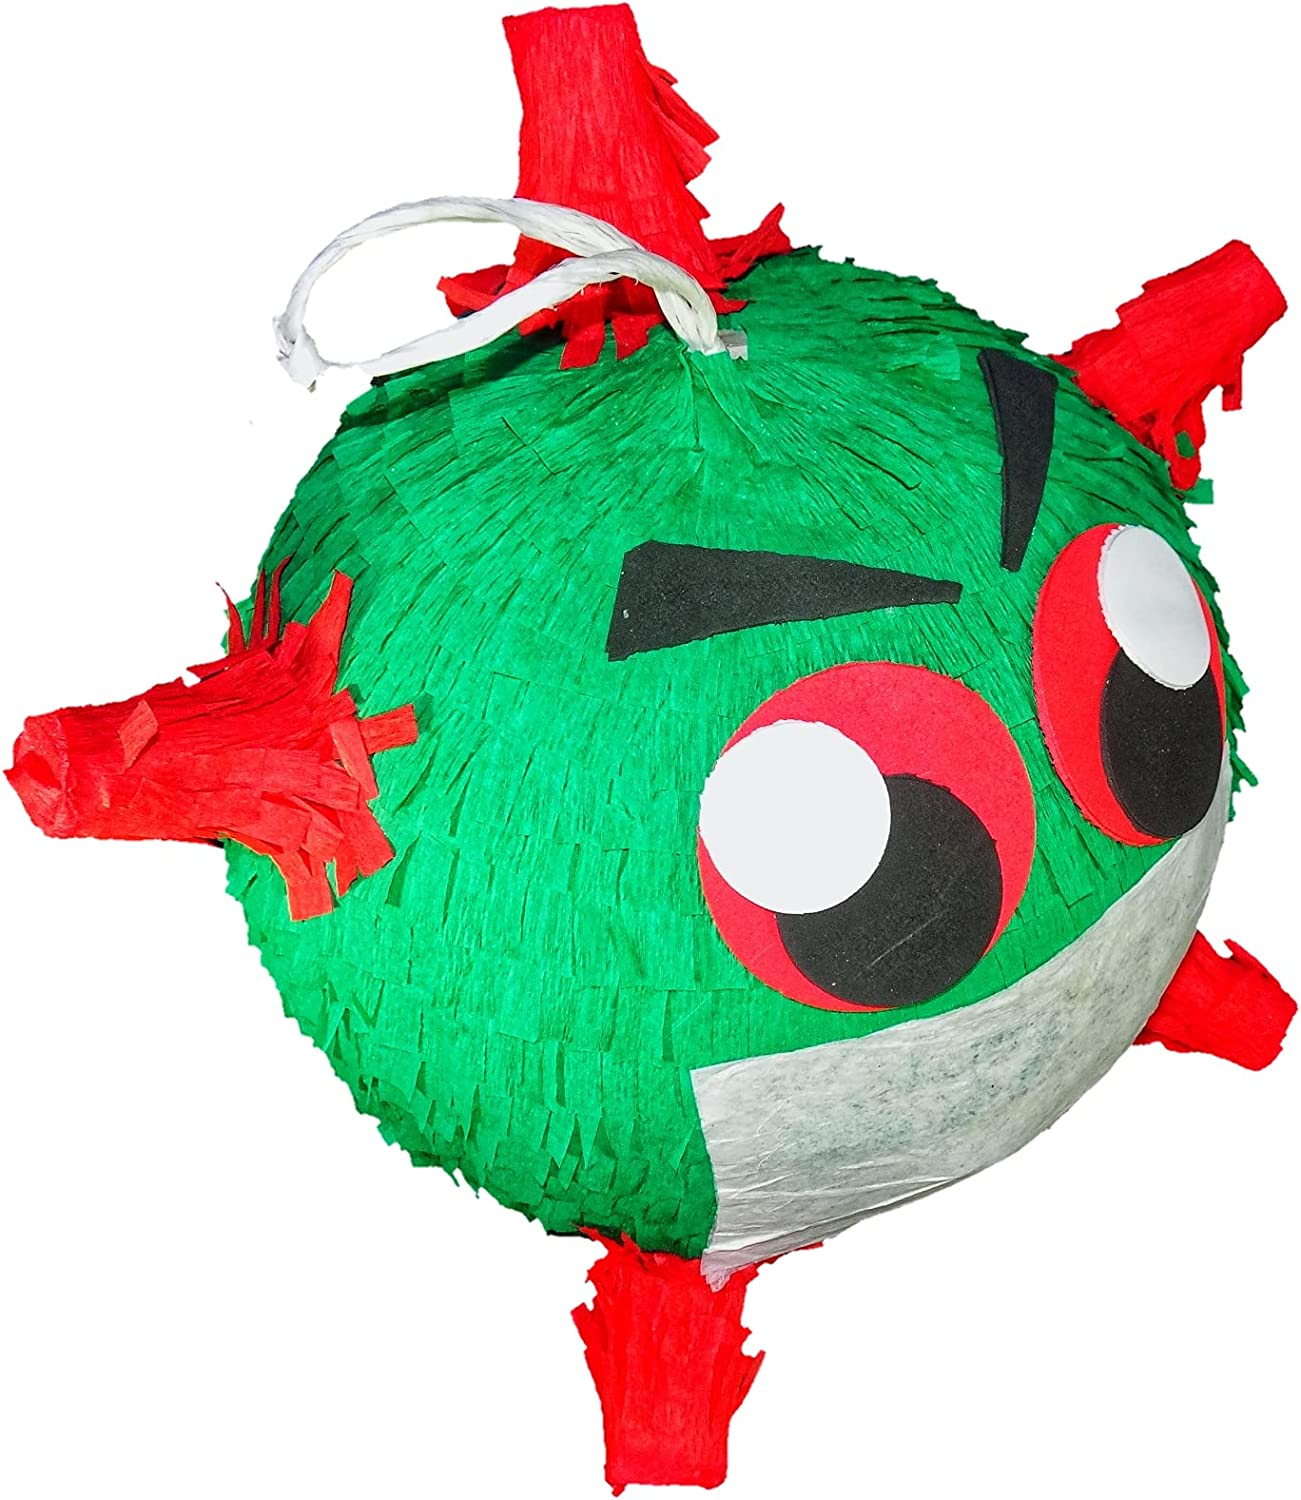 birthday theme,Vi/_rus Pinata Co/_vid pinata classic germ shape available for outdoor indoor party pinata boys and girls favorite party supplies this year for you to banish the sickness. break it